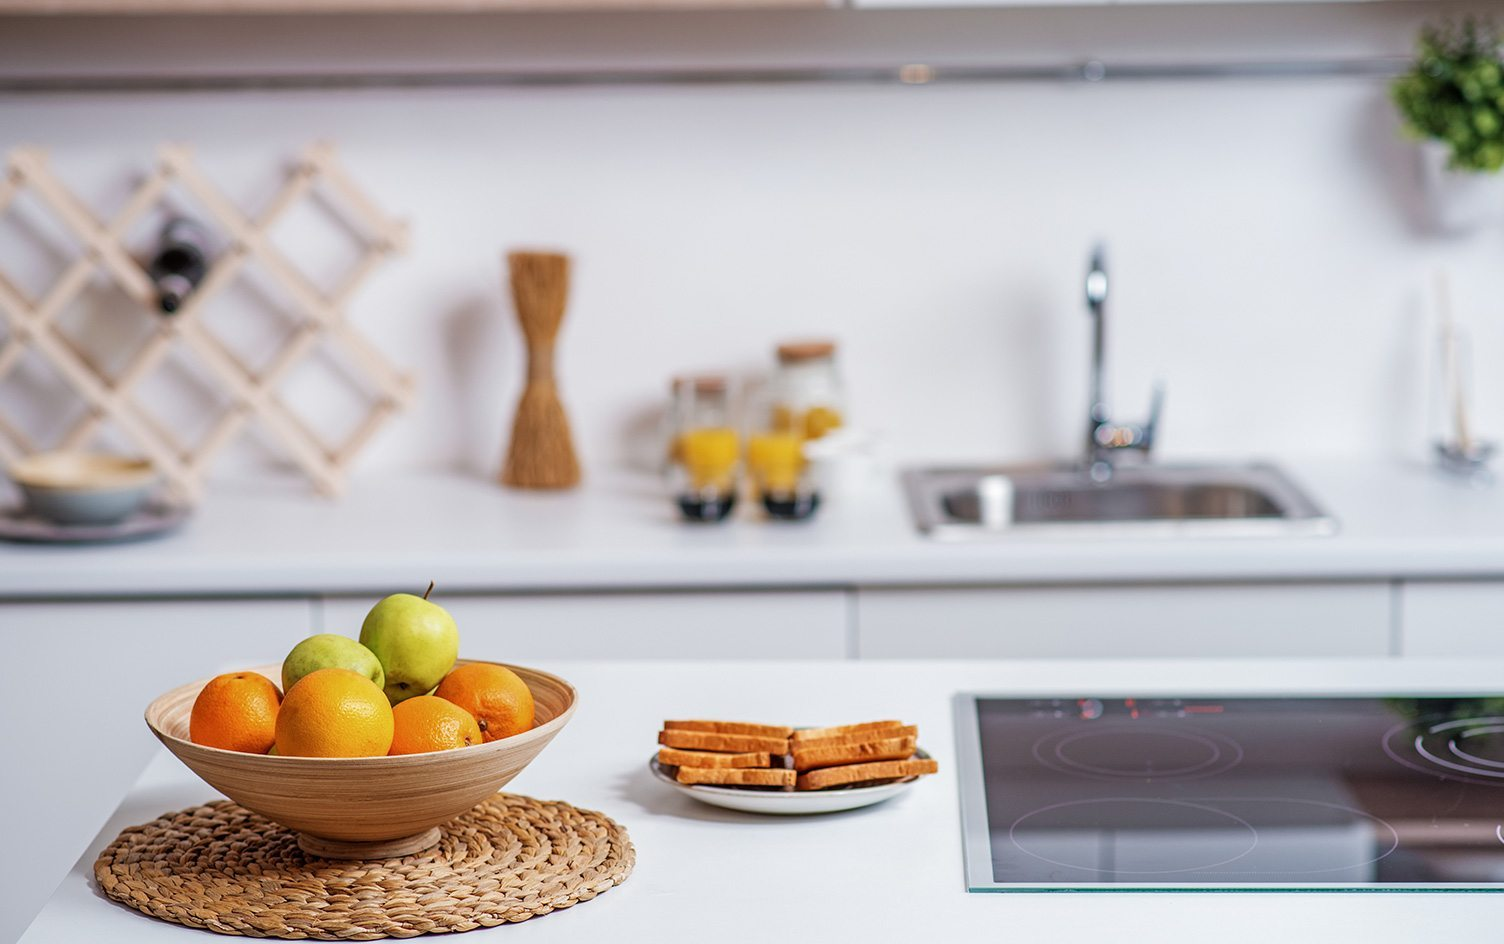 5-Ways-to-Make-Your-Kitchen-an-Oasis-of-Healthy-Eating